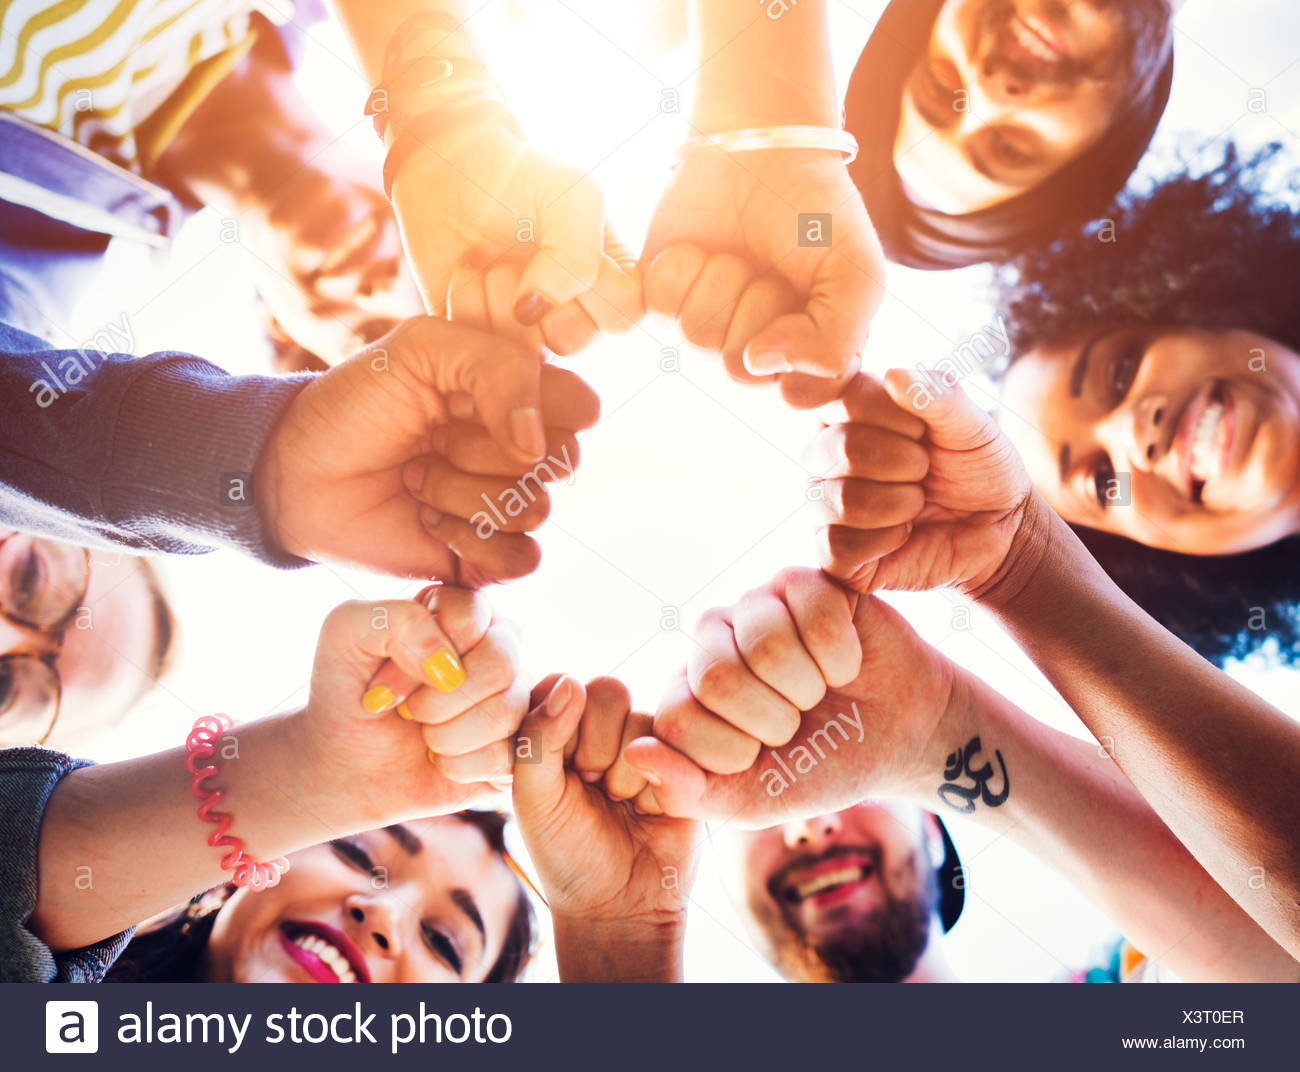 Friends Fist Together Circle Teamwork Concept - Stock Image